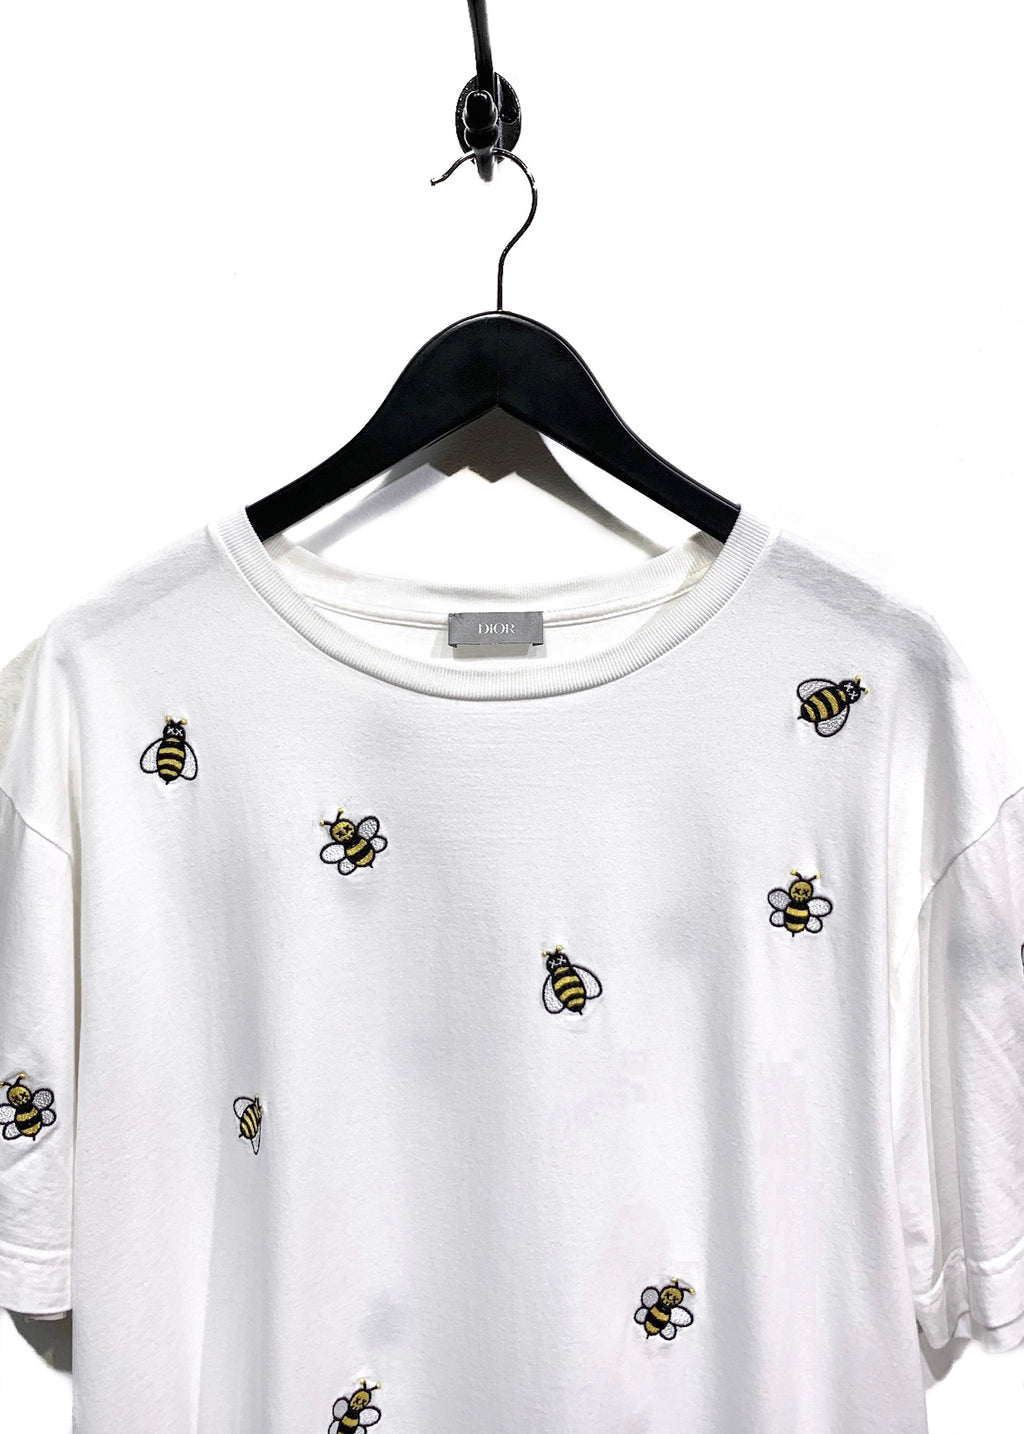 Dior X Kaws White Bee Embroidered T-Shirt